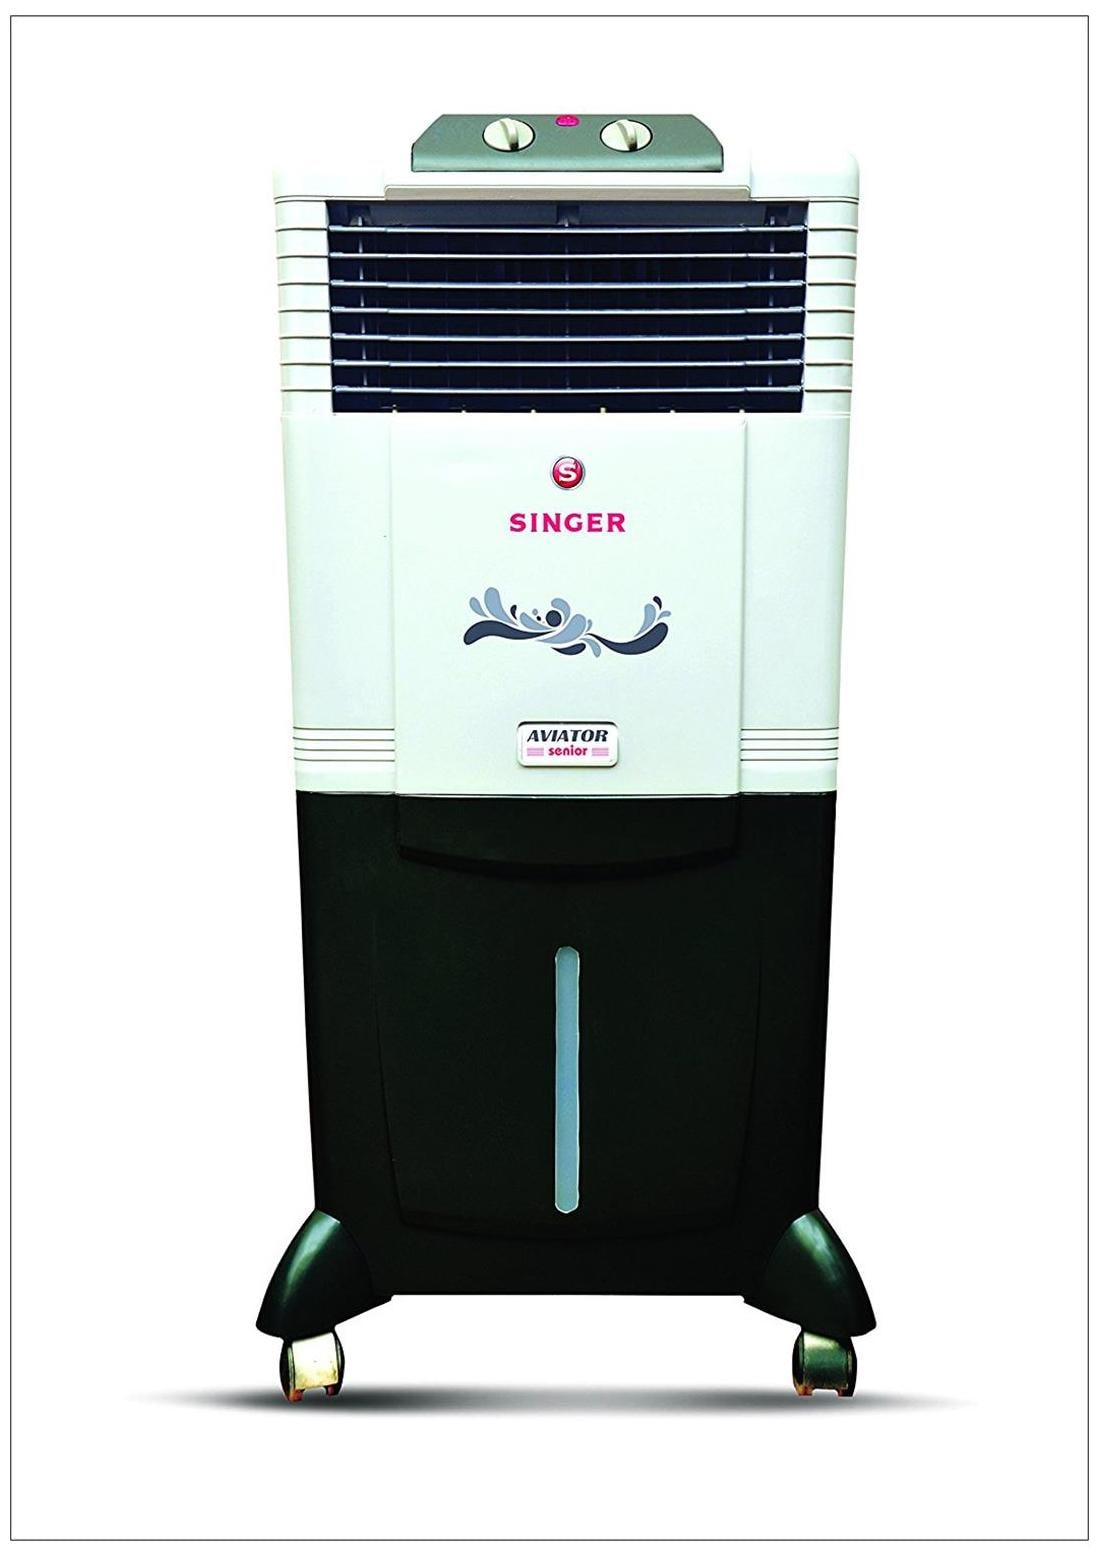 Singer Aviator Senior Tower Air Cooler